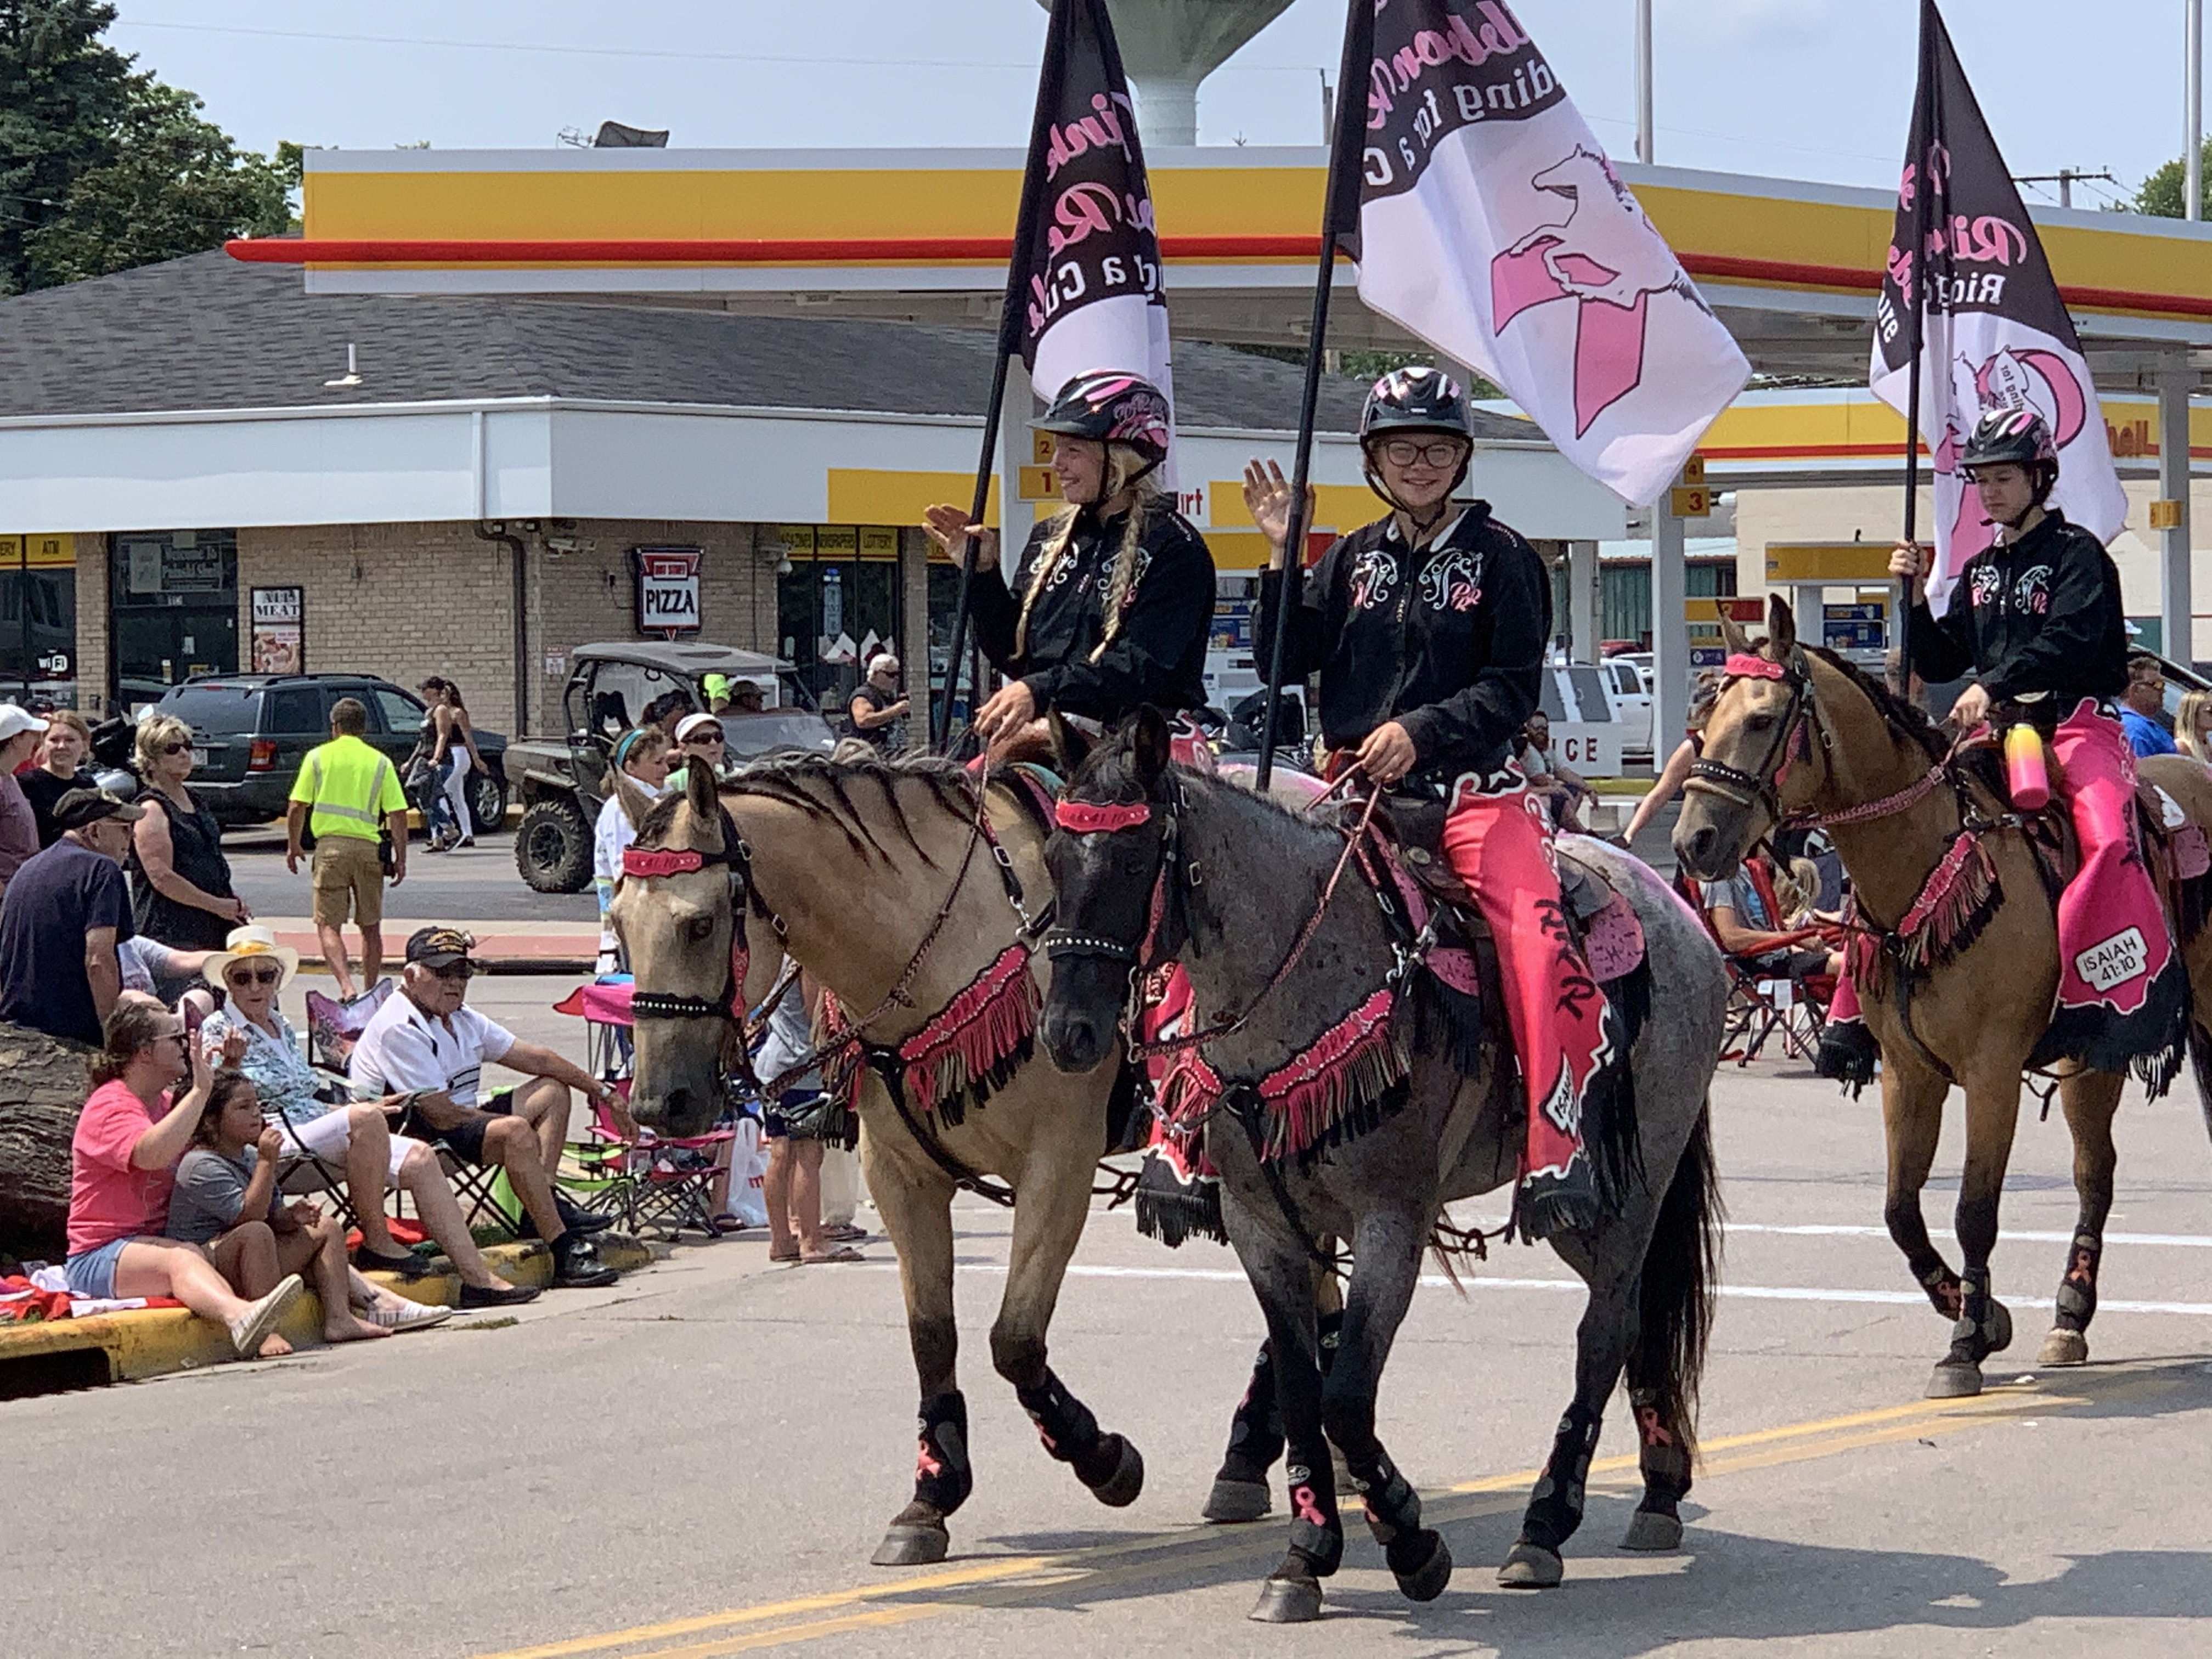 One of the more popular parts of the parade was the horses as they walked through promoting breast cancer awareness on July 18.Luke Reimer   NEW Media